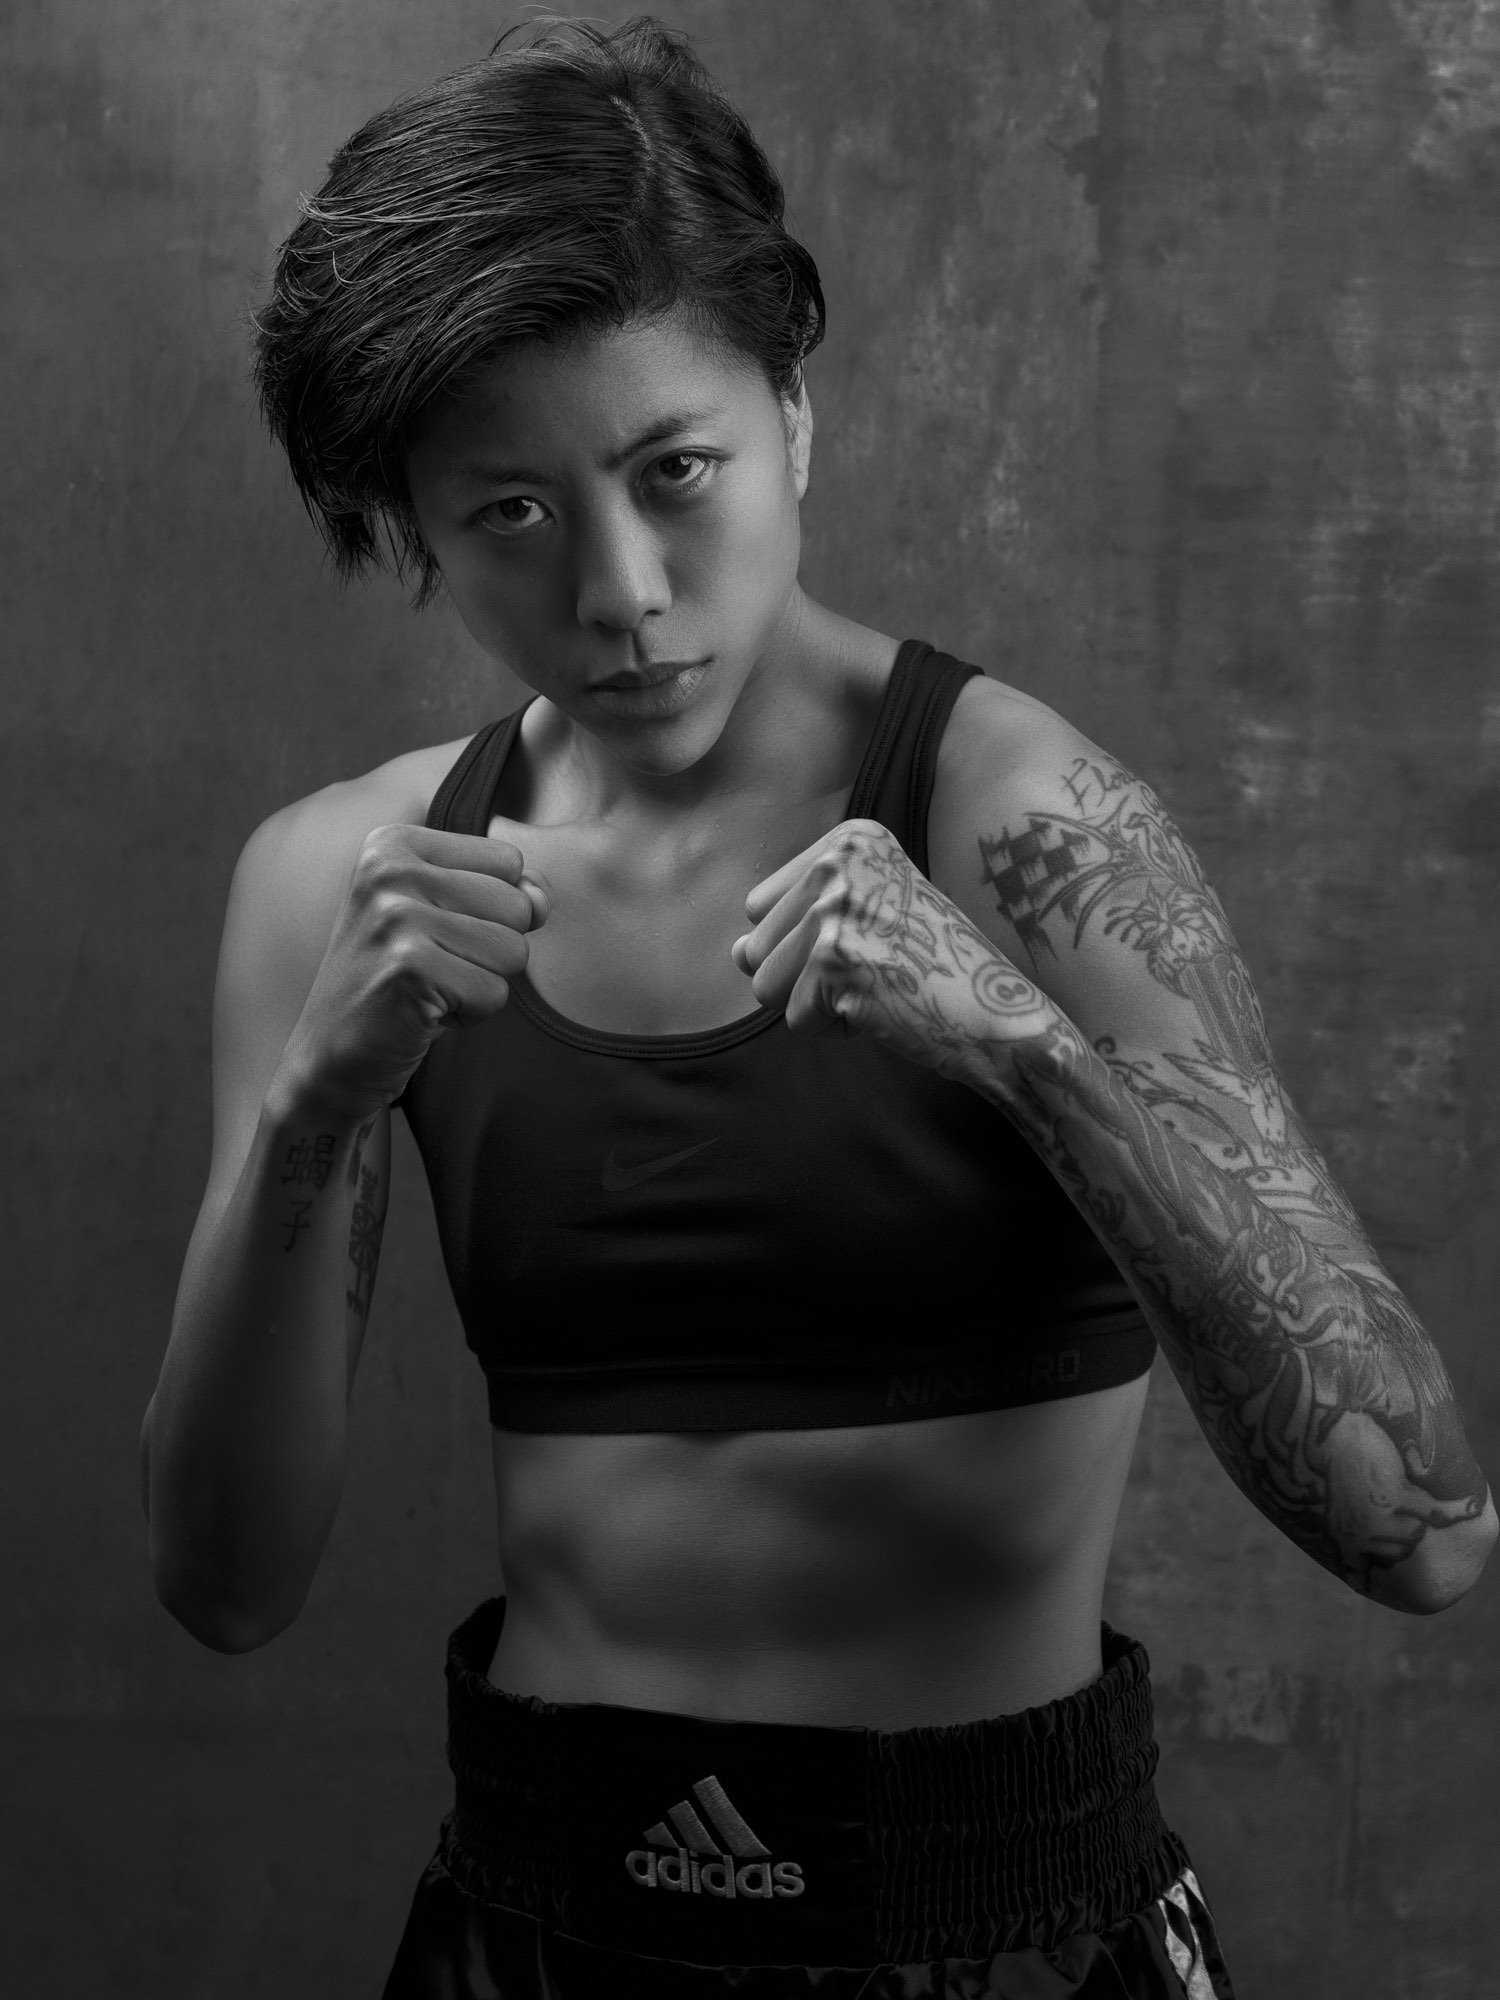 advertising Beauty boxer boxing woman Commercial Editorial Portraiture Documentary Photographer fujifilm Director Singapore Jose Jeuland photography fashion street